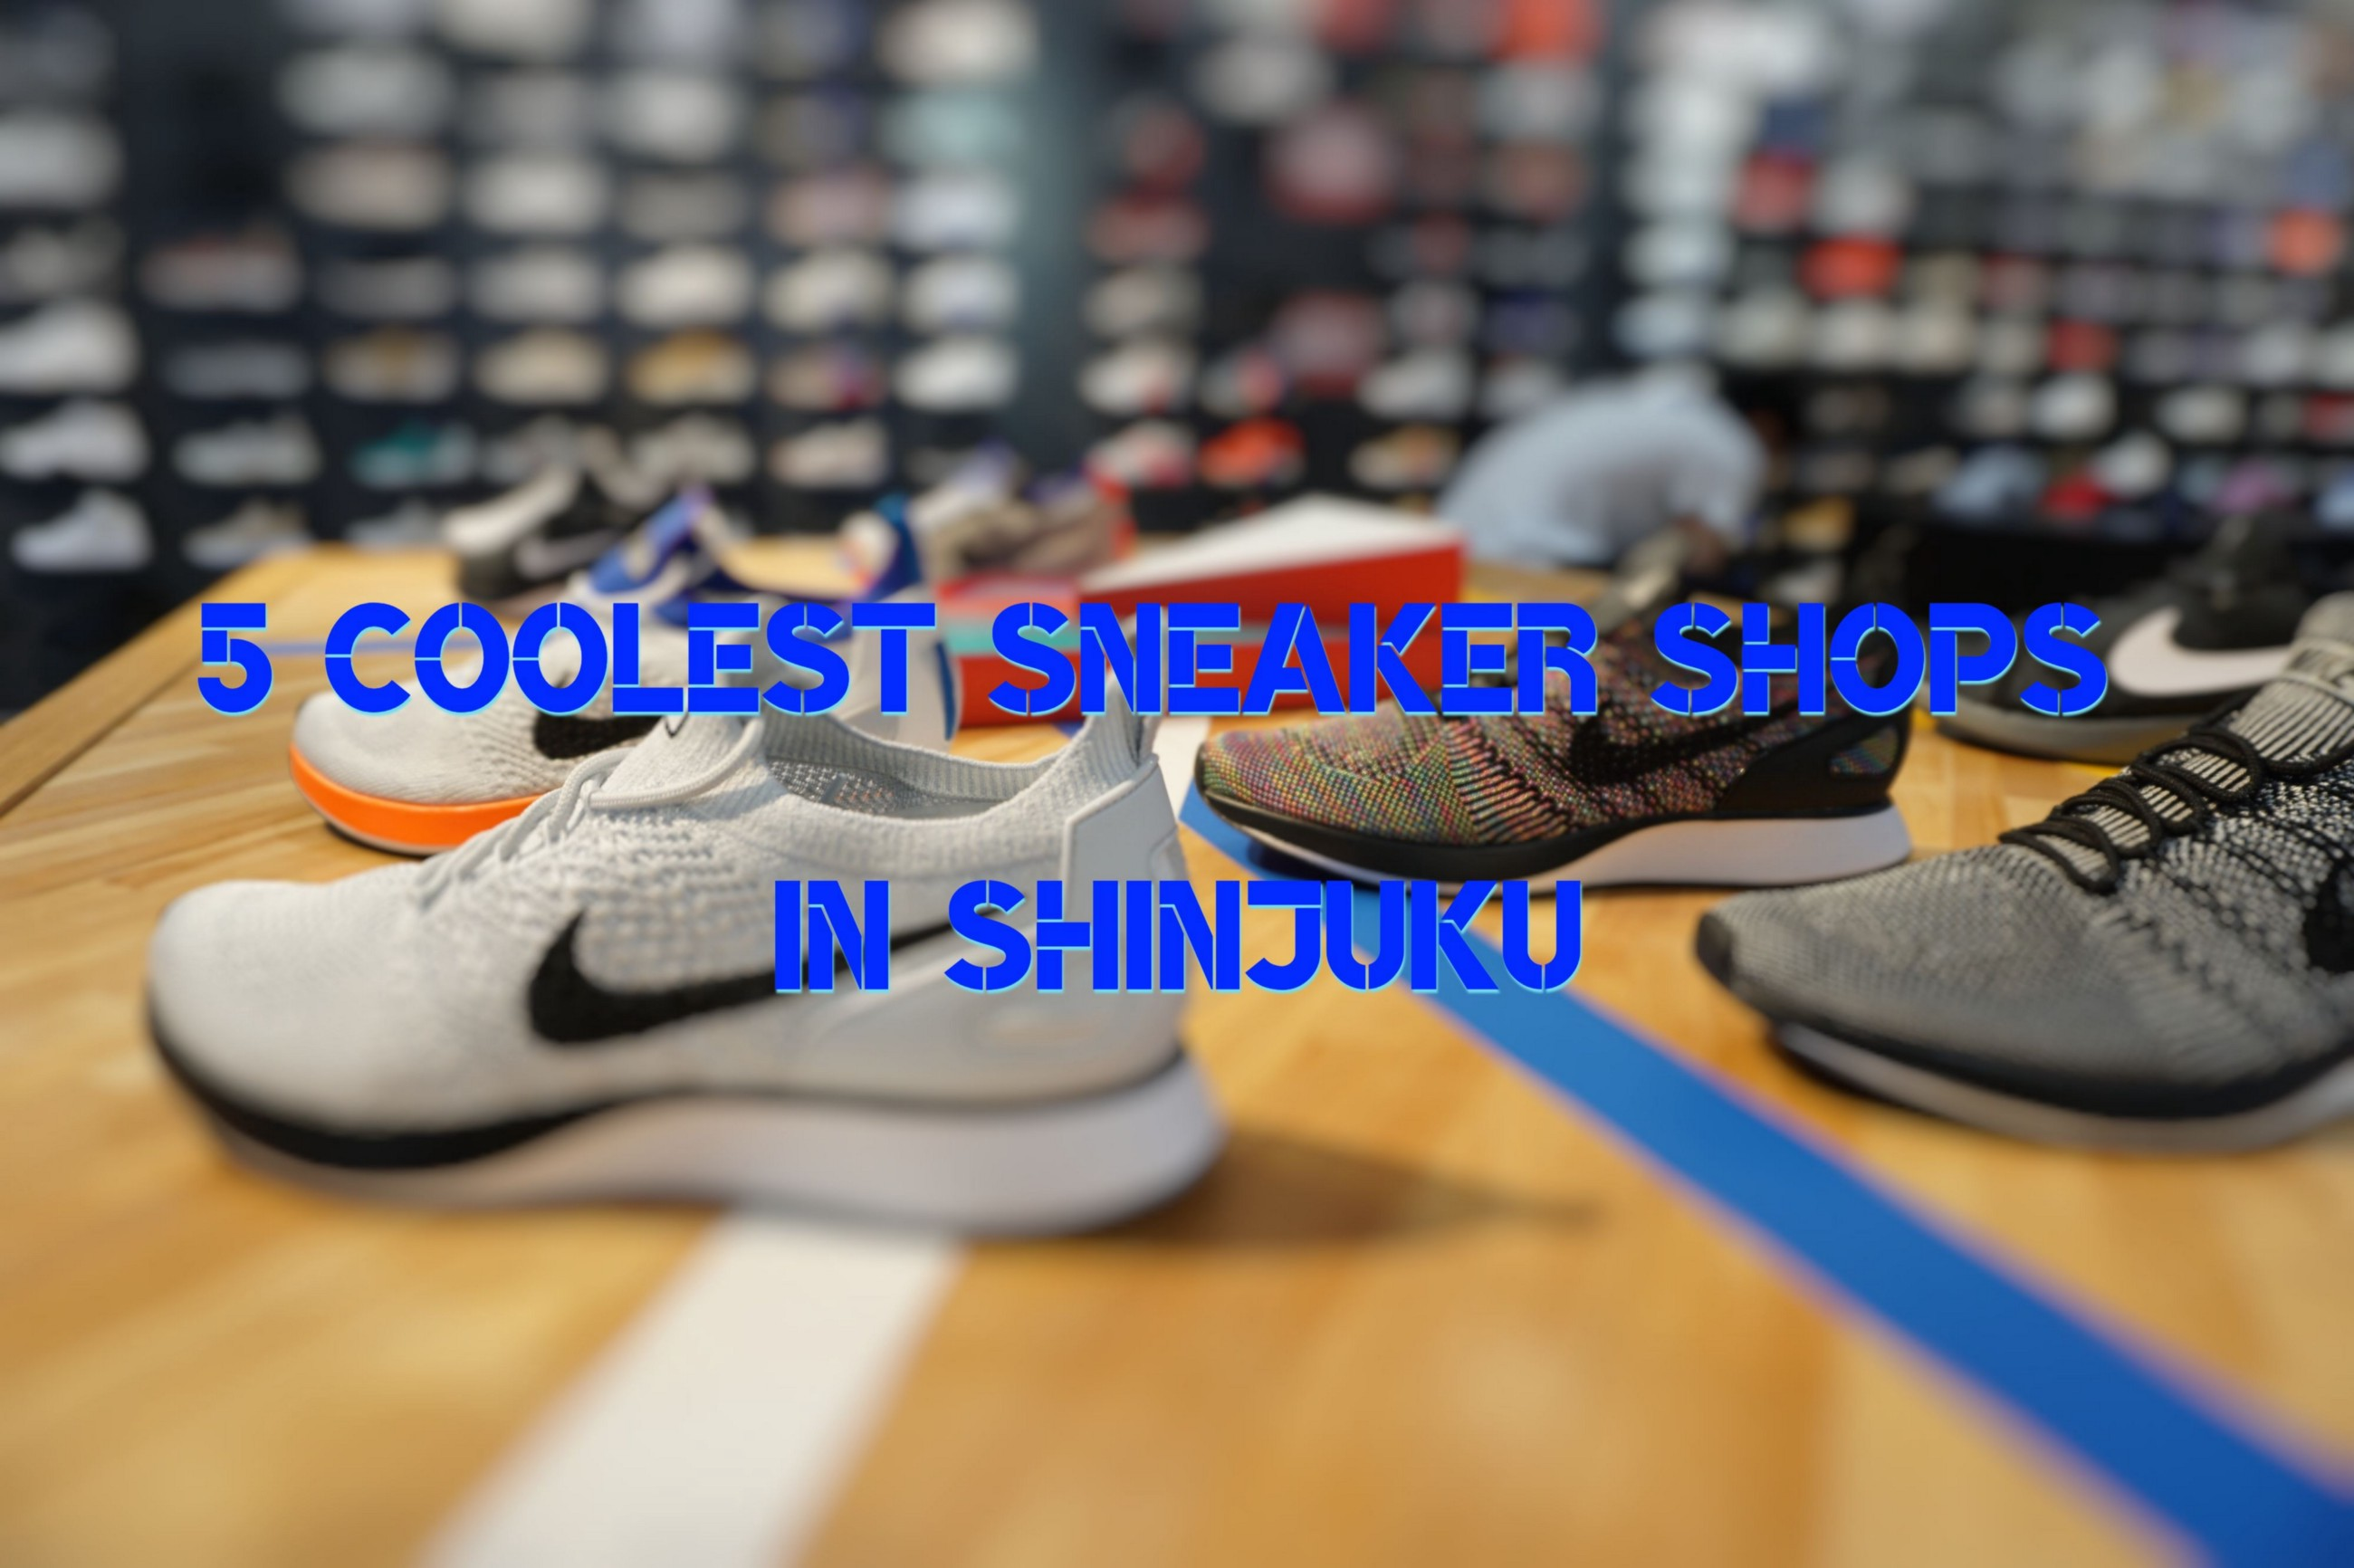 sneakers for cheap 907e4 e07b3 5 Coolest Sneaker Shops in Shinjuku – Japan Travel Guide -JW Web Magazine